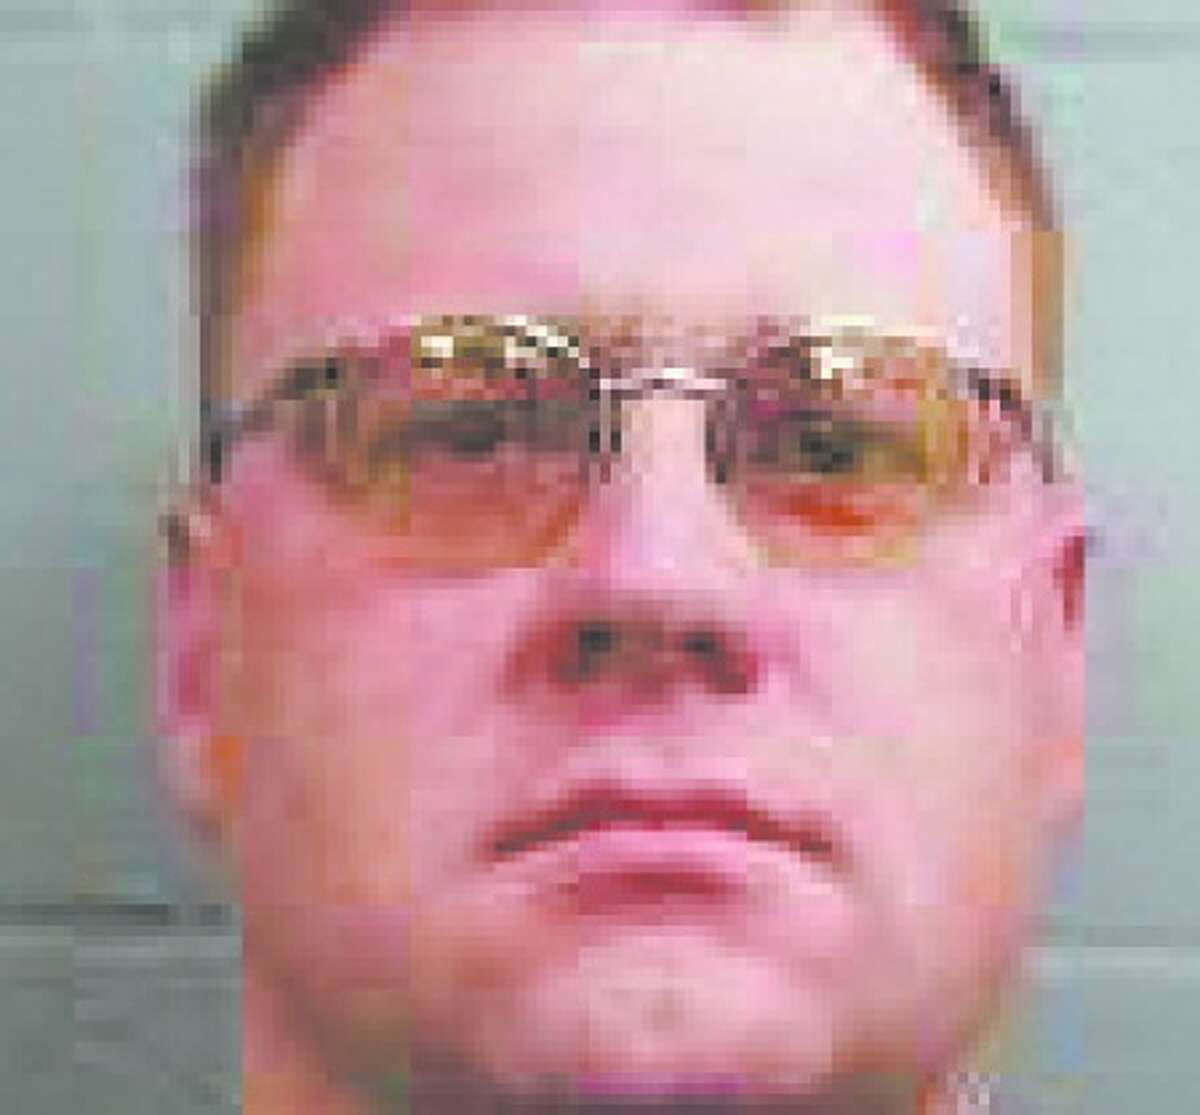 Commission votes to remove Wilton officer from force